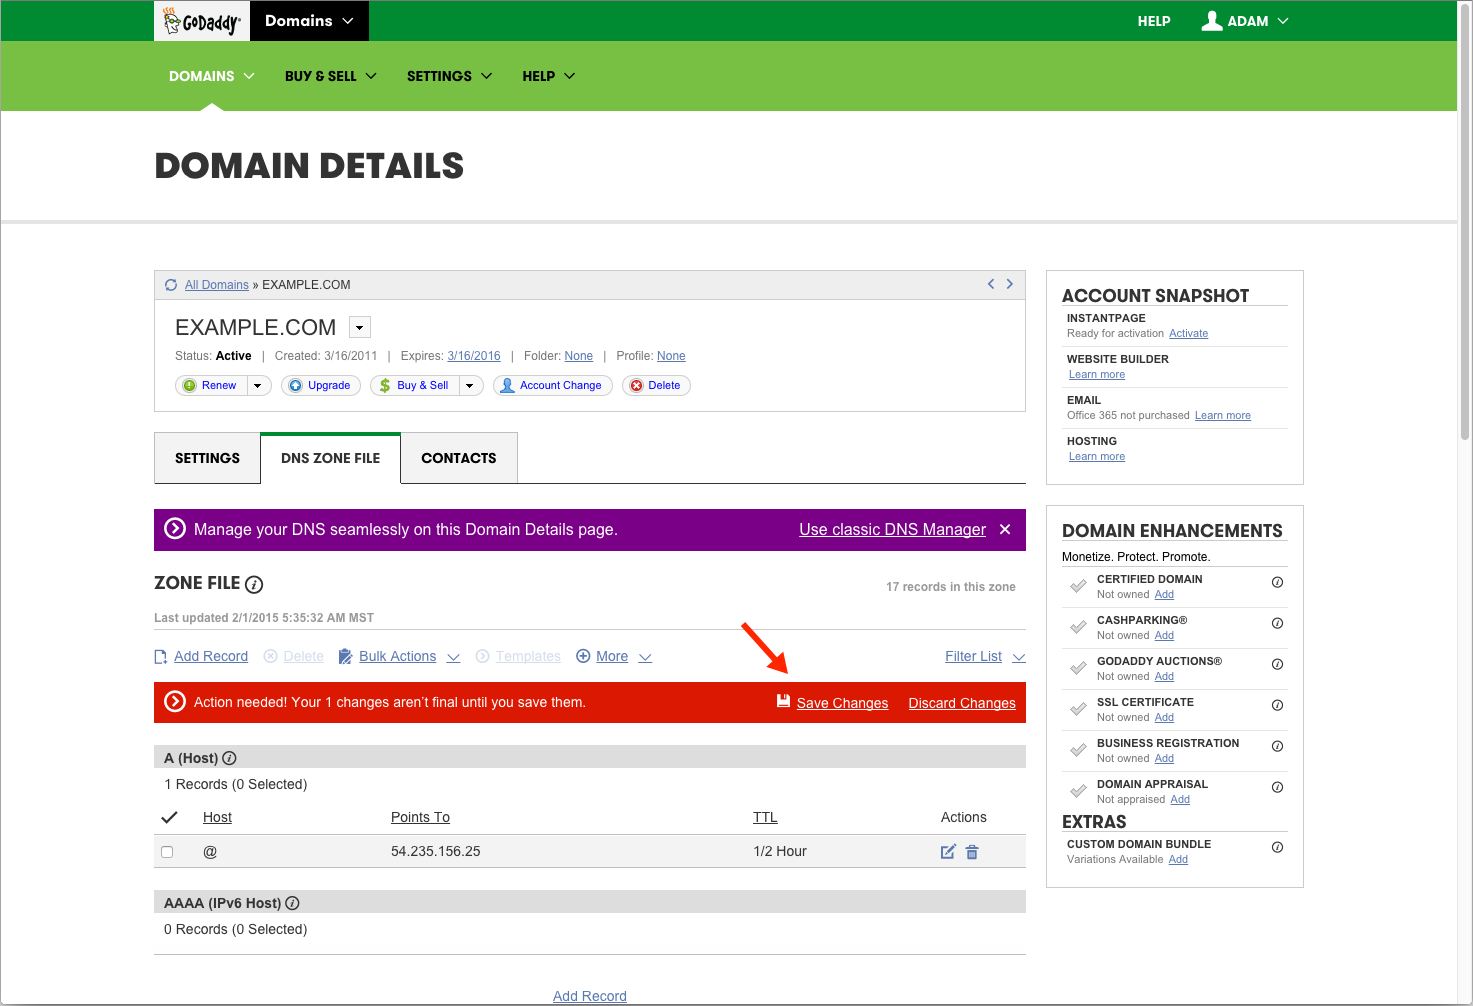 Save Changes to Finalize CNAME Record in GoDaddy Hosting Account